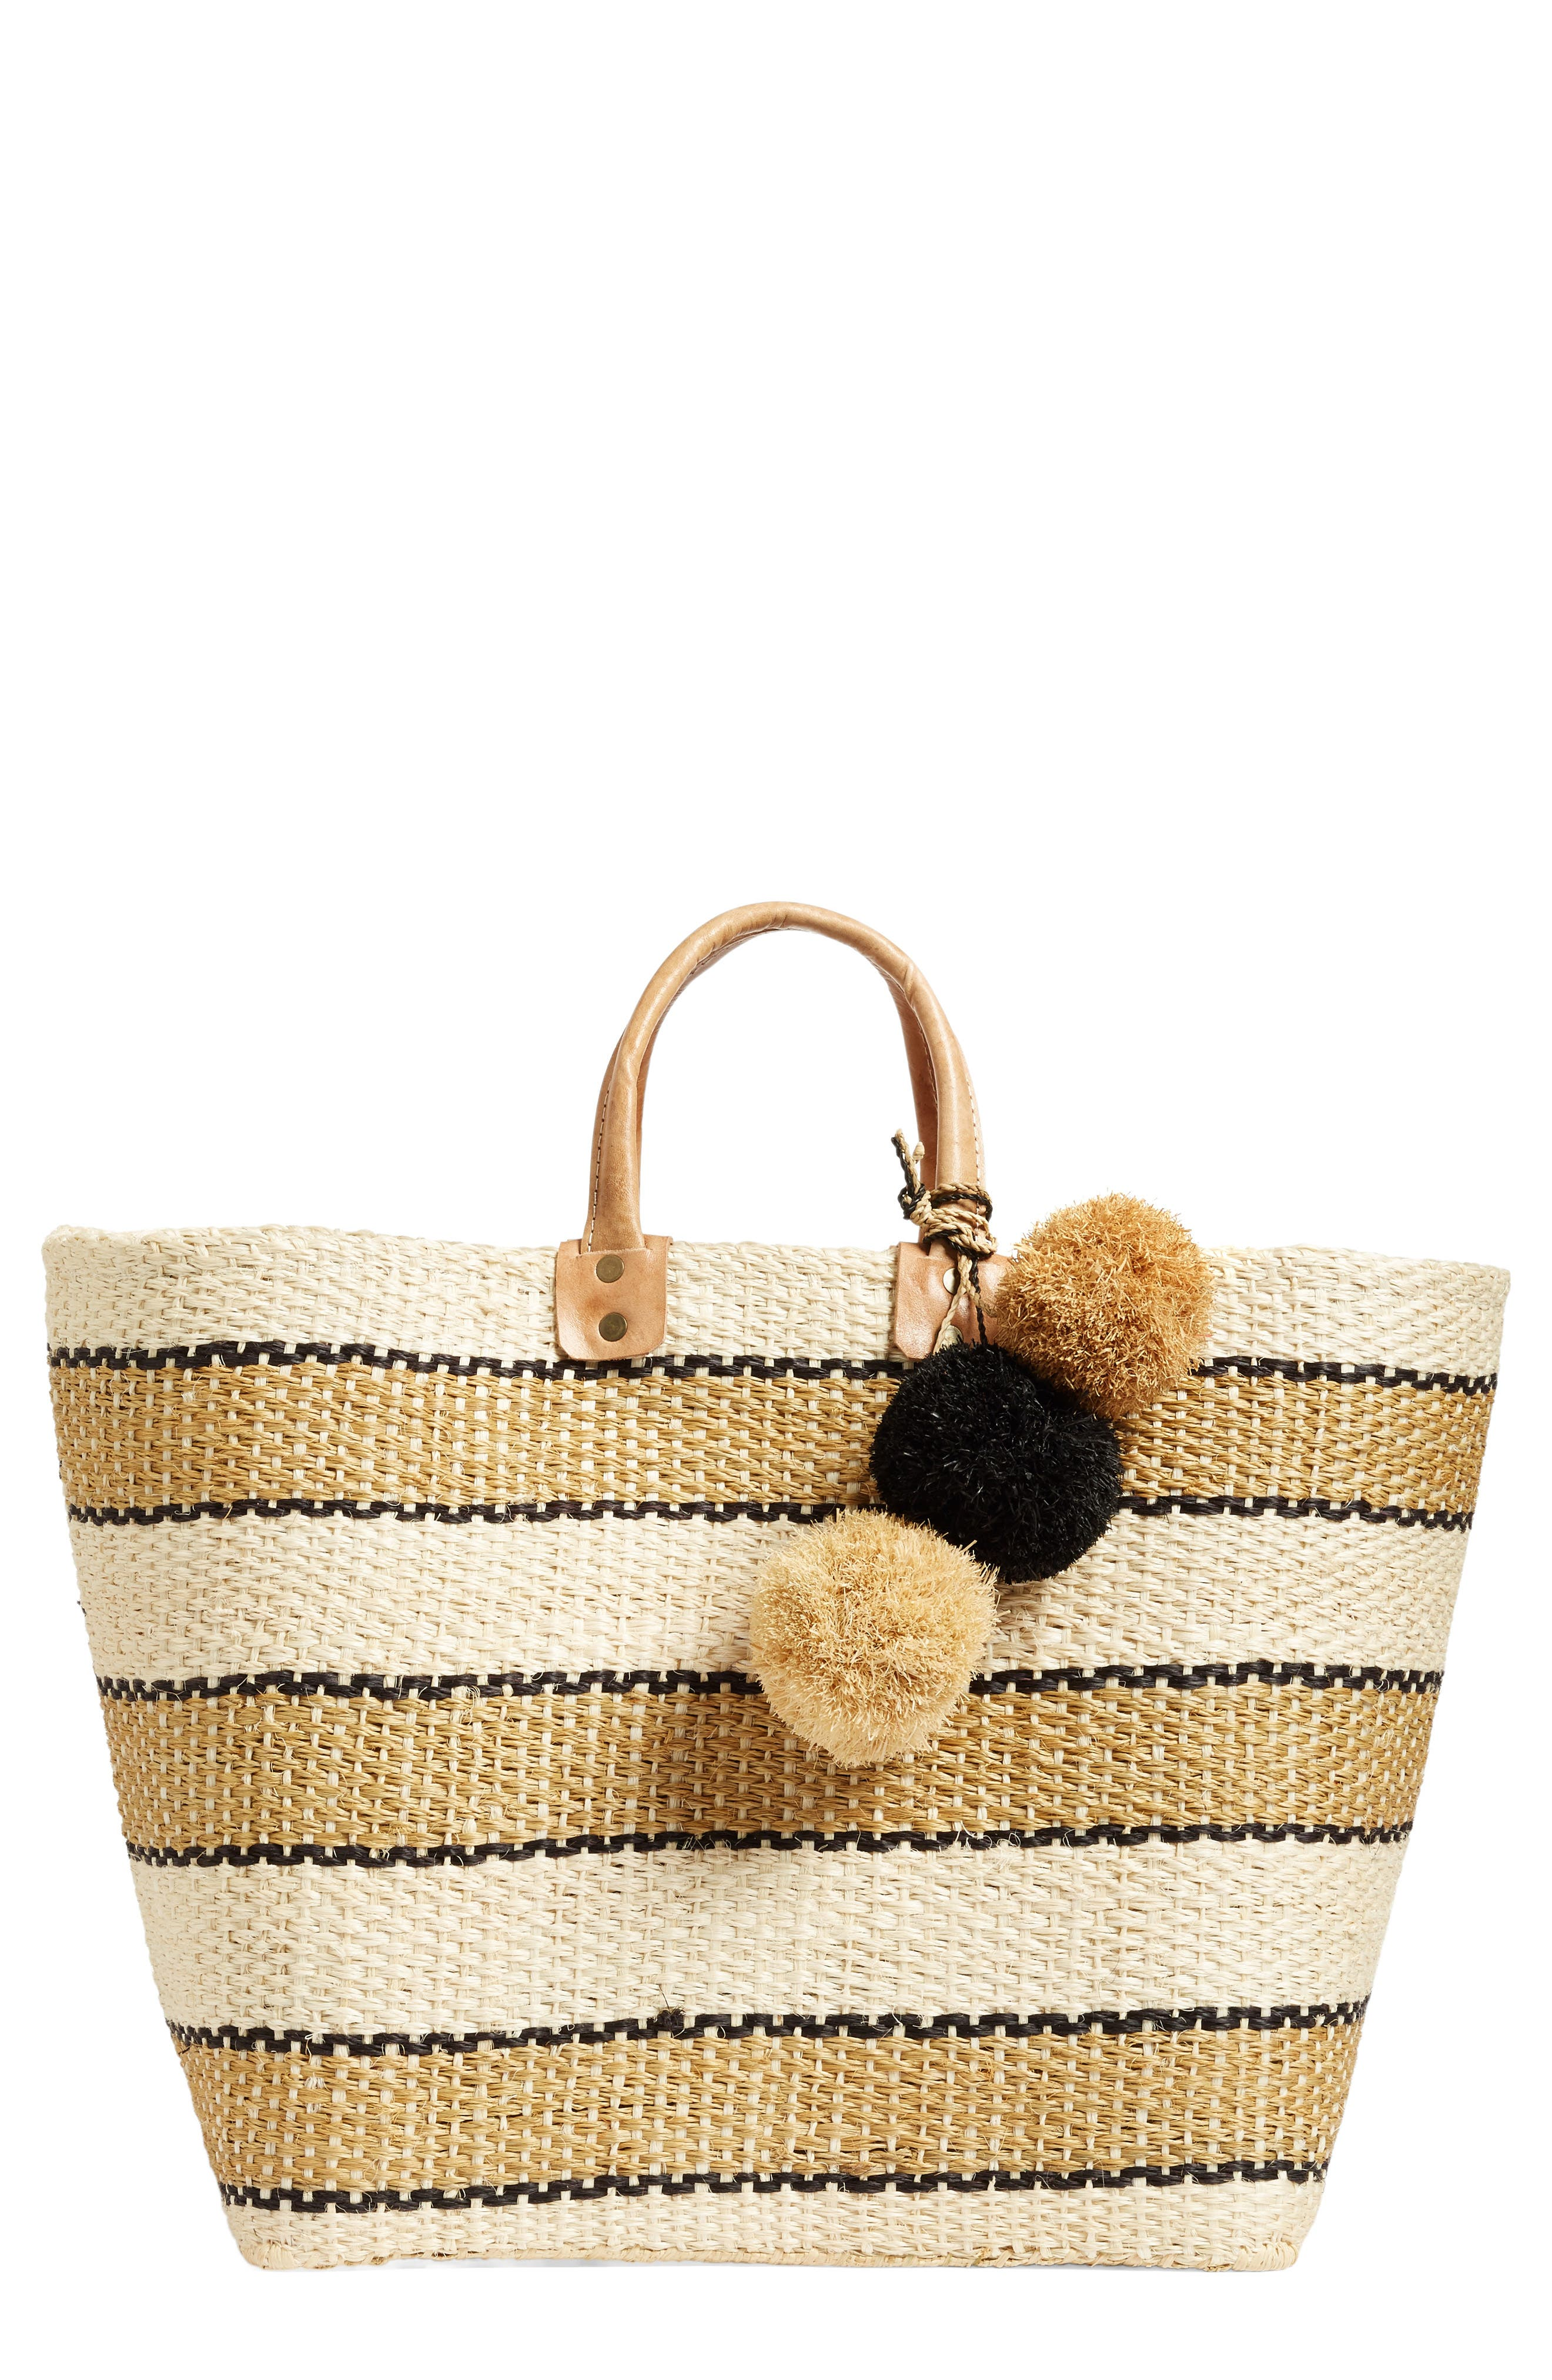 'Capri' Woven Tote with Pom Charms,                         Main,                         color, 200